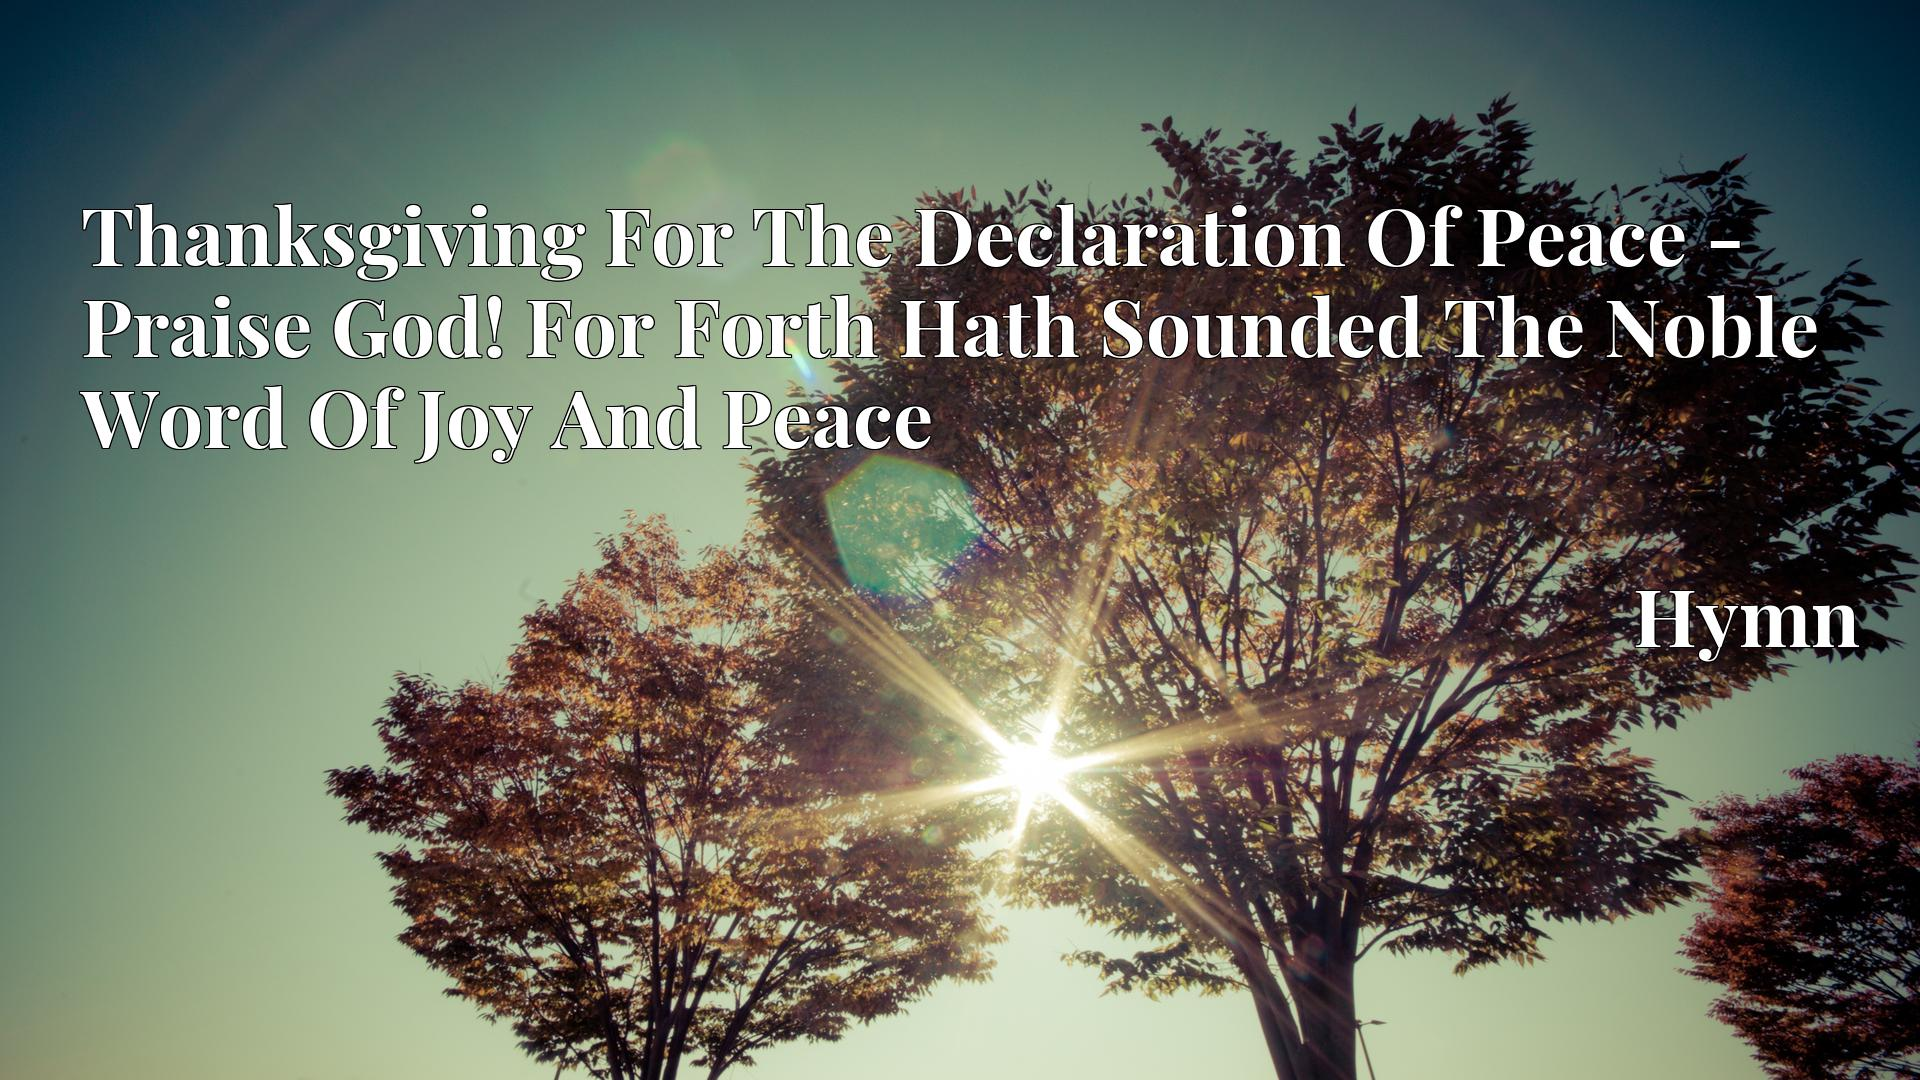 Thanksgiving For The Declaration Of Peace - Praise God! For Forth Hath Sounded The Noble Word Of Joy And Peace - Hymn